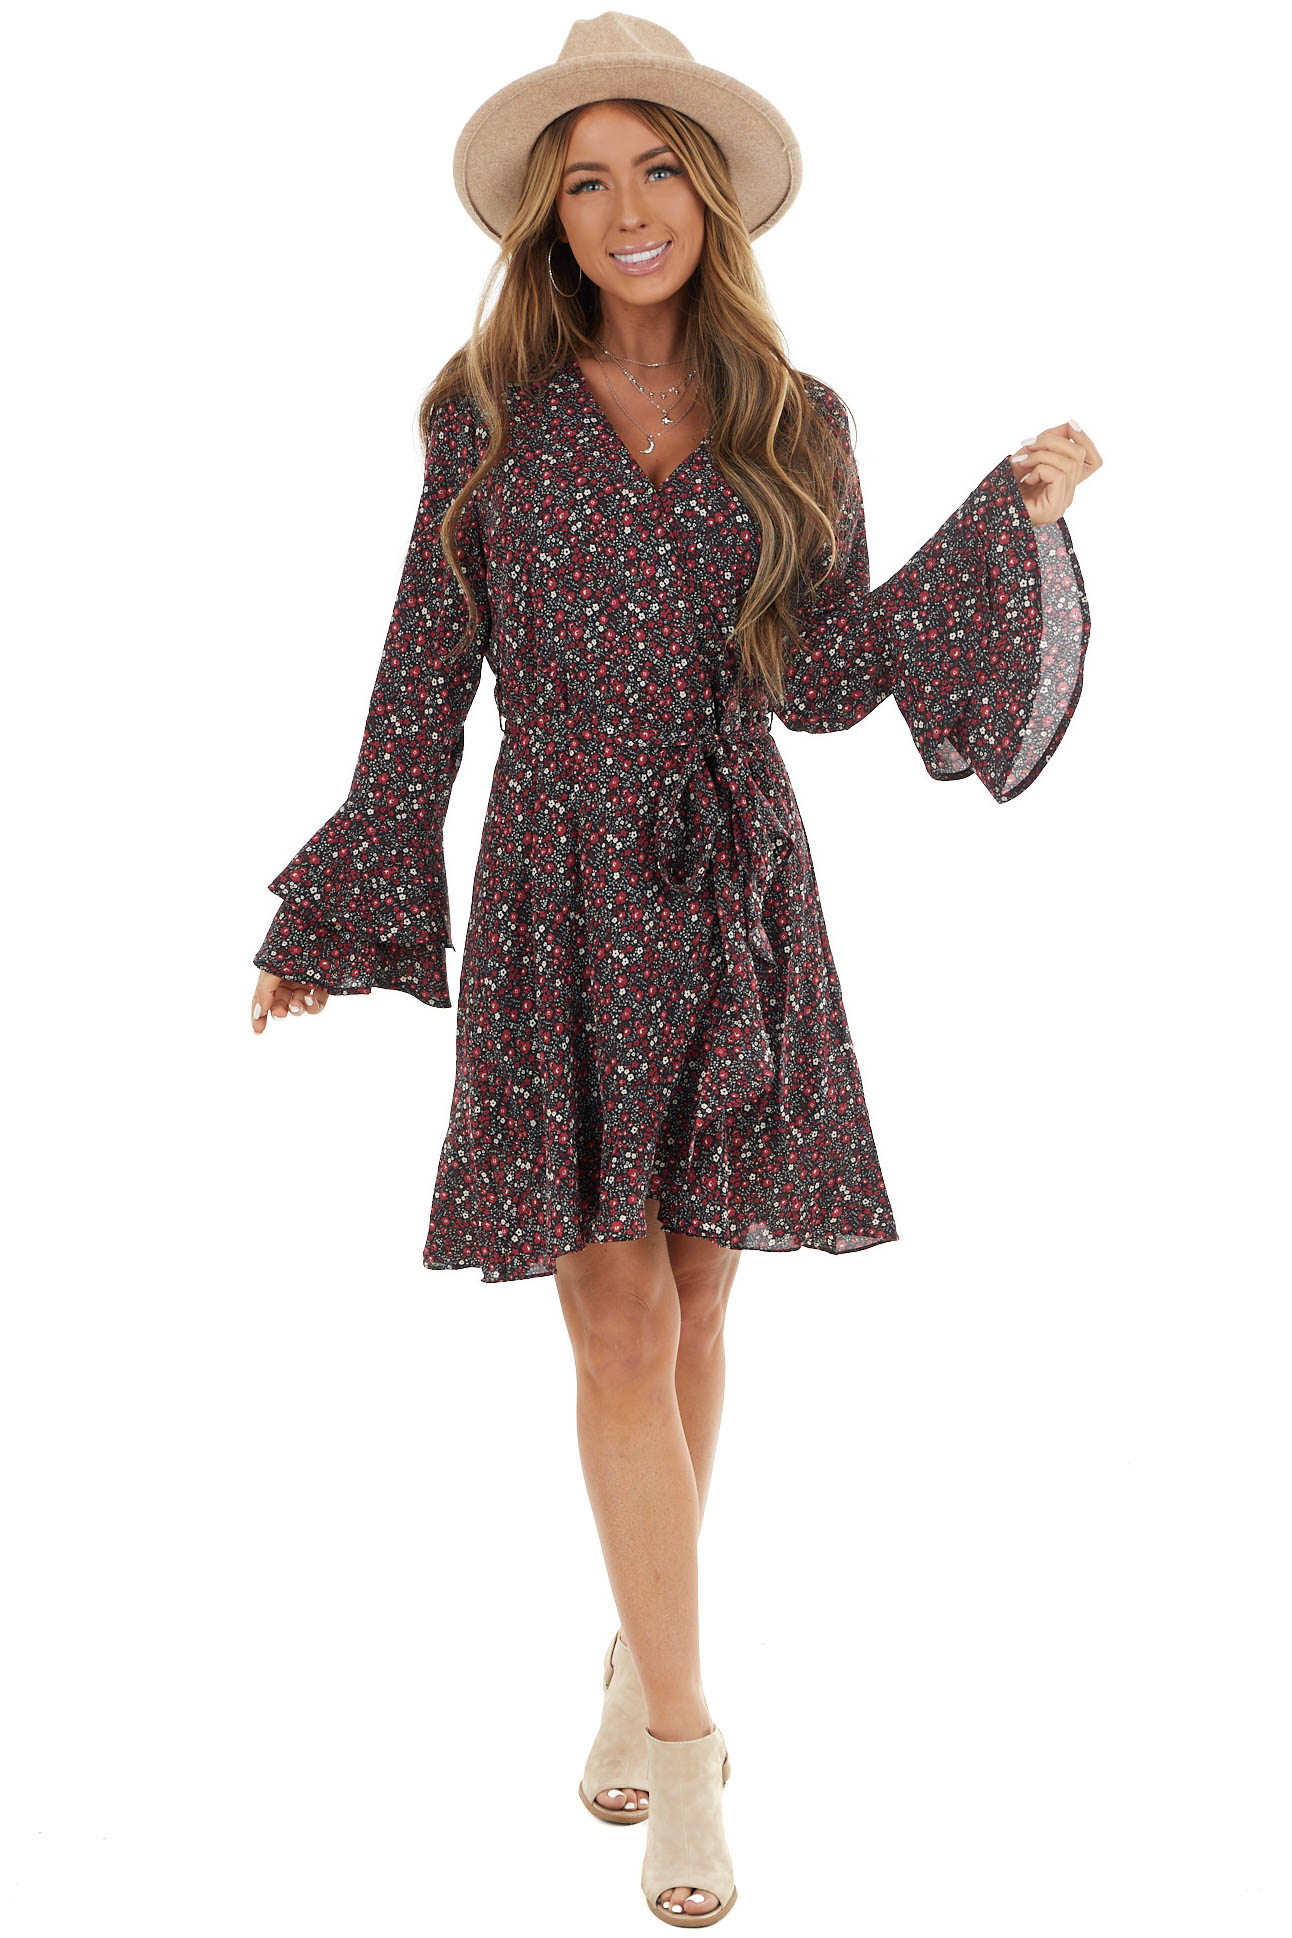 Black Floral Print Surplice Dress with Long Bell Sleeves